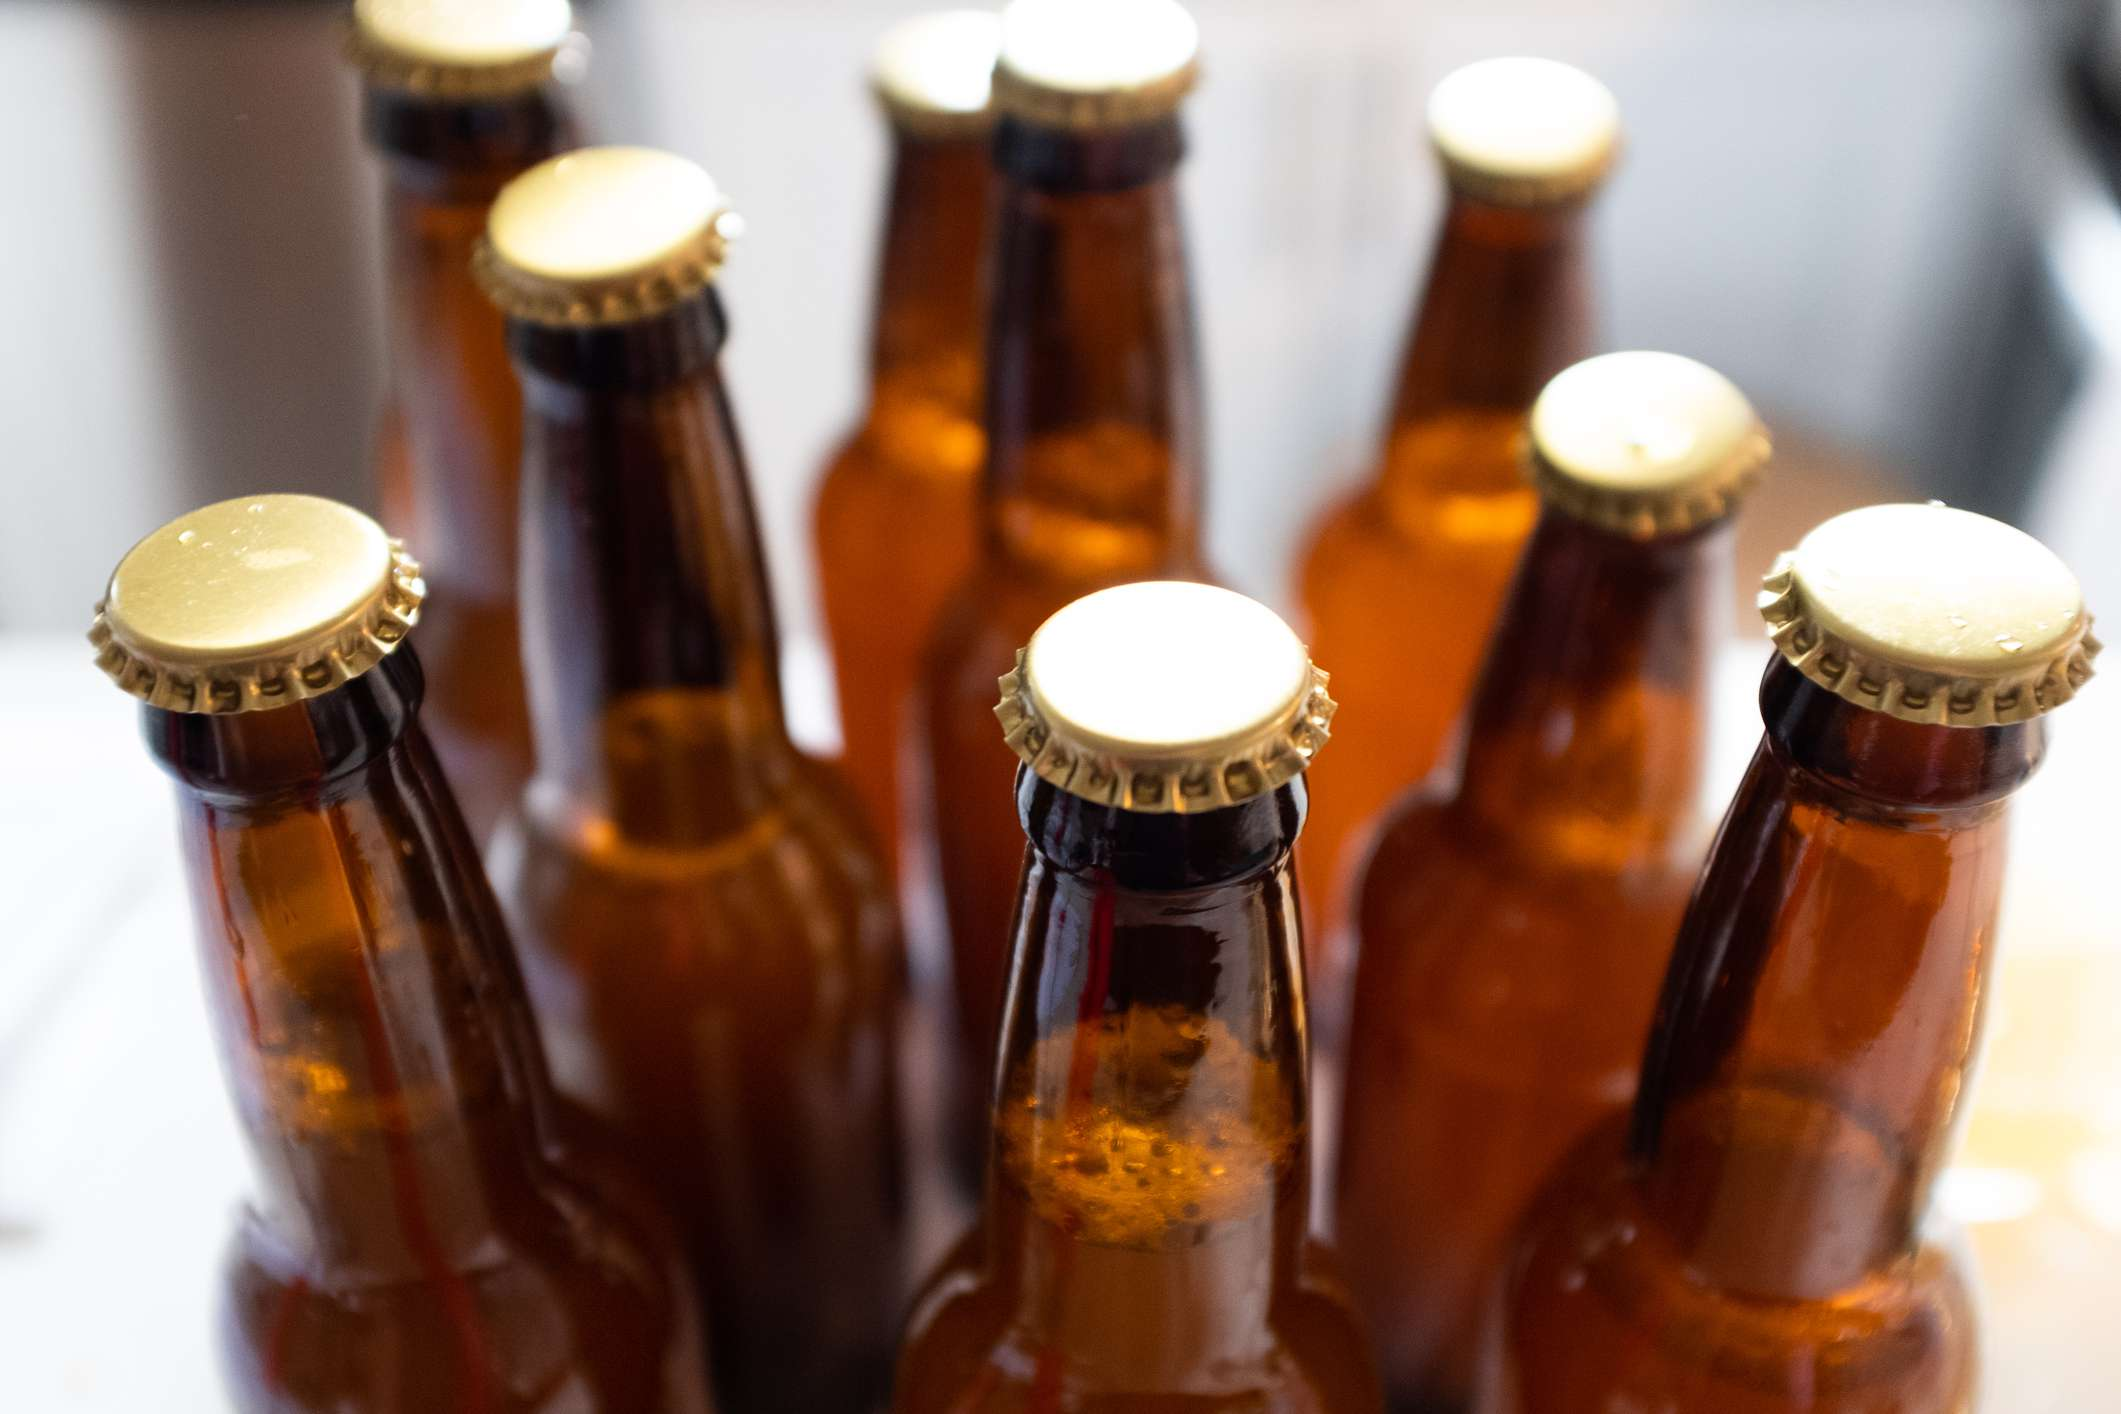 Beer bottles with gold caps.